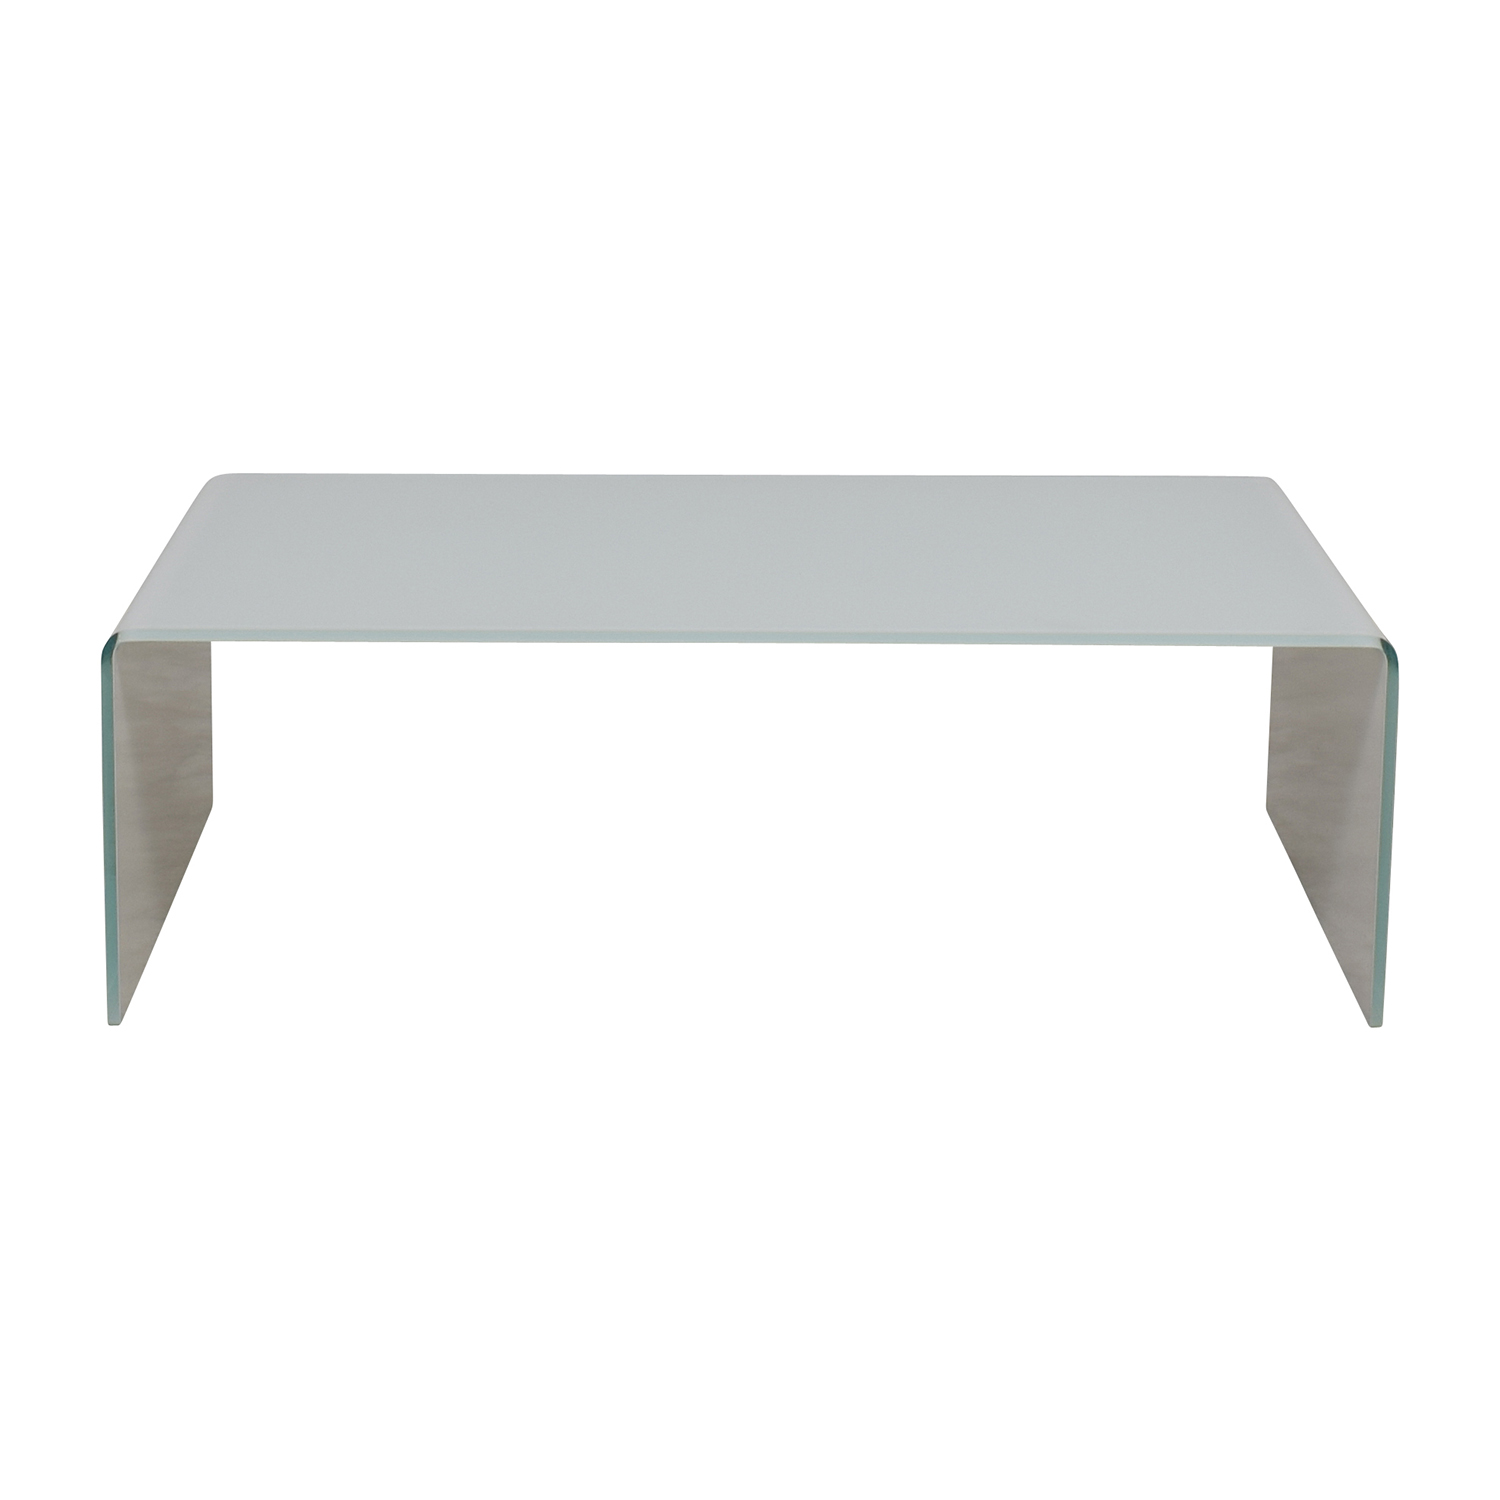 Miniforms Miniforms High-End Curvo White Glass Table Coffee Tables